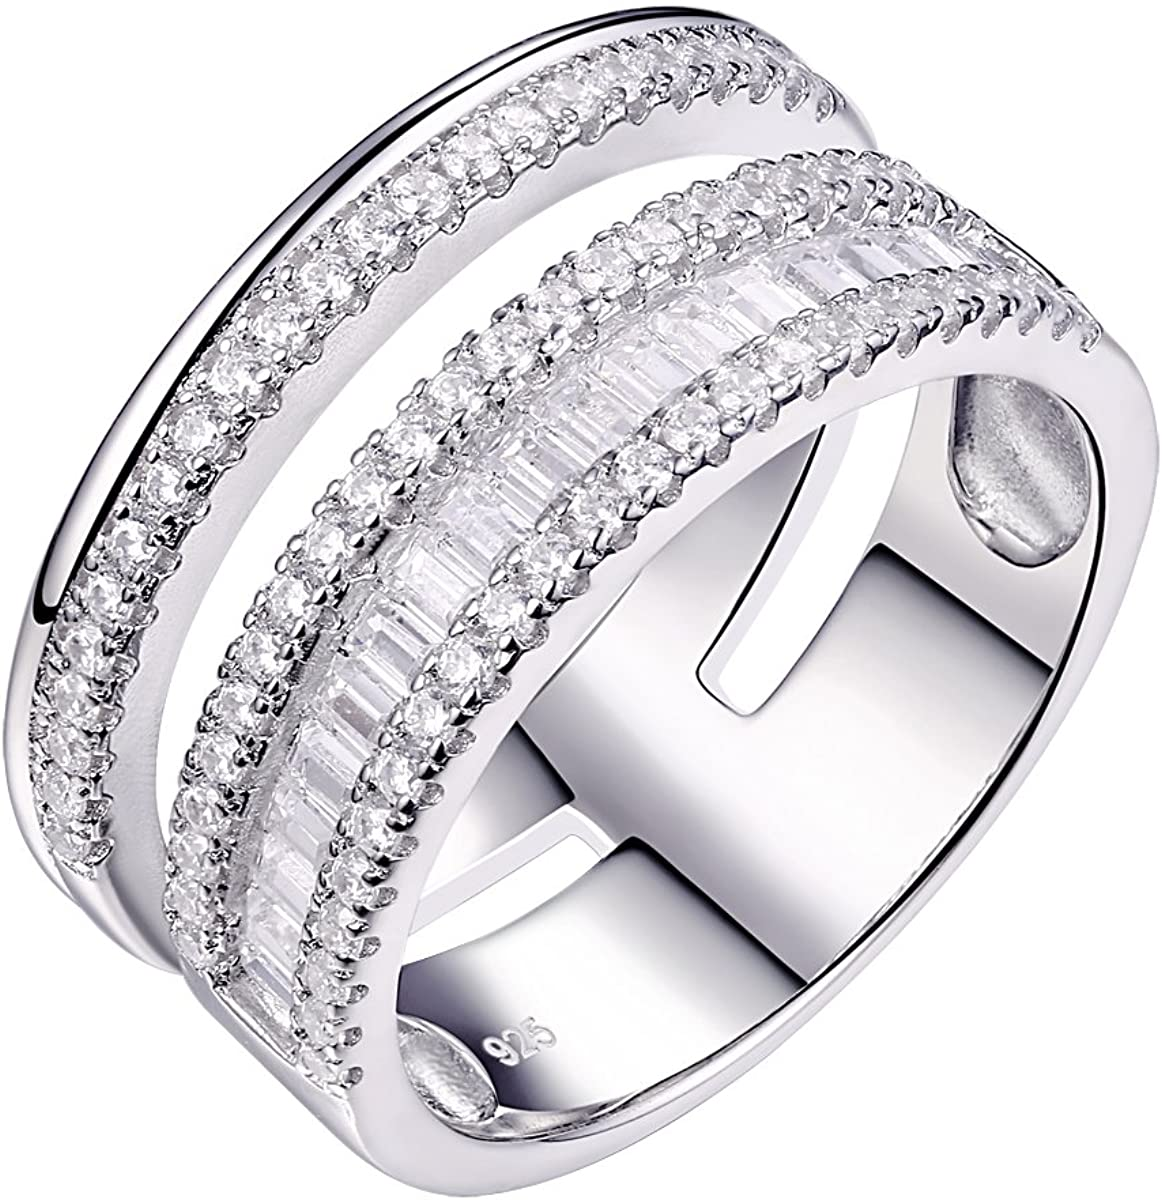 It is a photo of Newshe Woman White AAA Cz 43 Sterling Silver Wide Wedding Band Statement Ring Gemstone Size 43-43